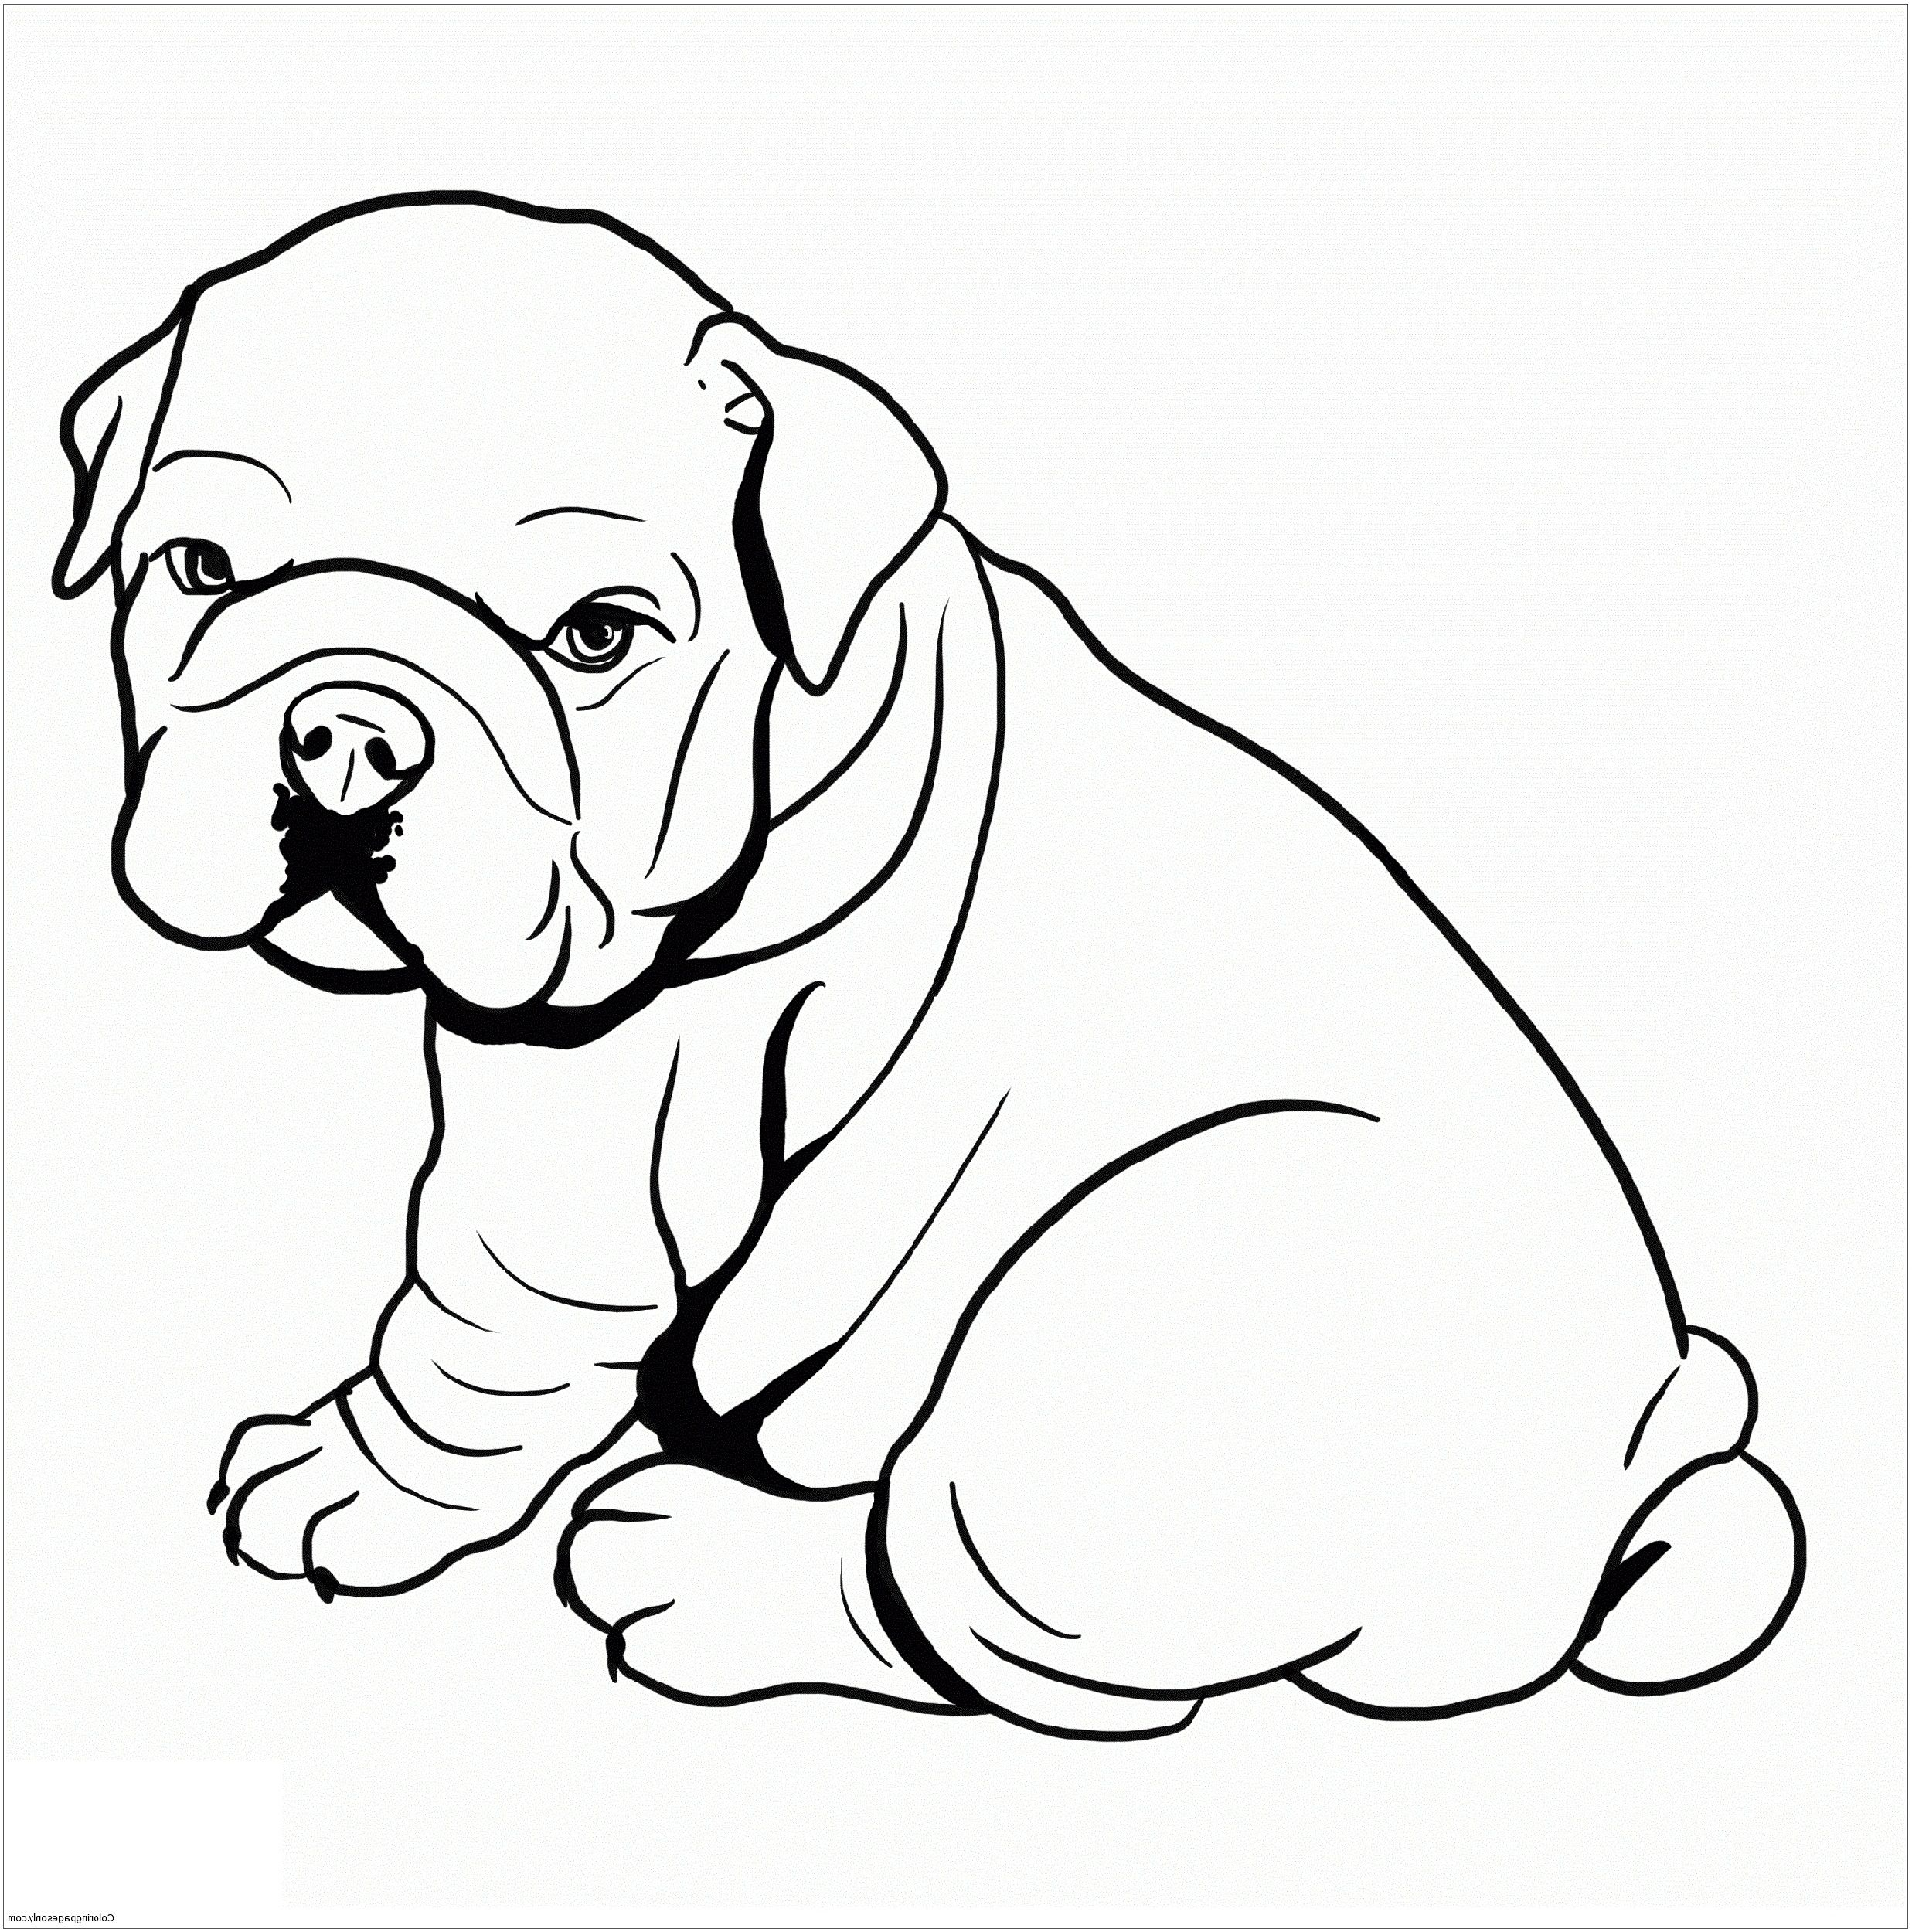 Pitbull Coloring Pages For Dog Lovers Educative Printable Dog Coloring Page Puppy Coloring Pages Animal Coloring Pages